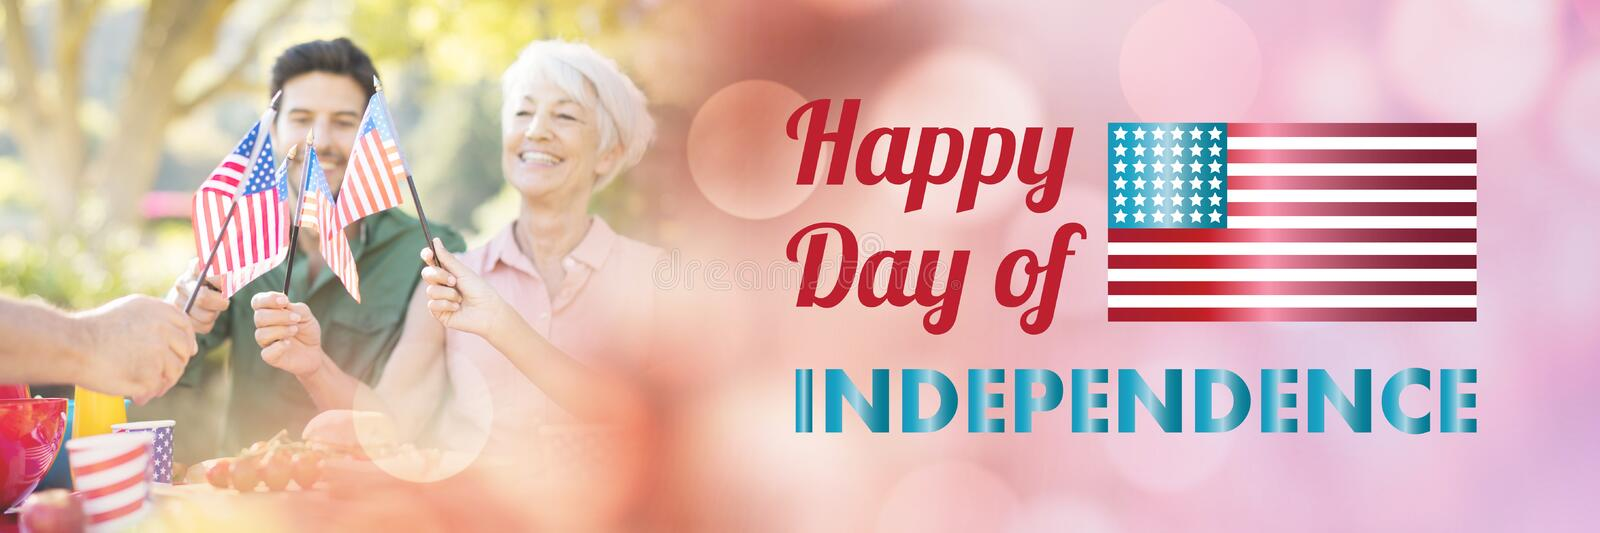 Composite image of happy independence day message over white background vector illustration